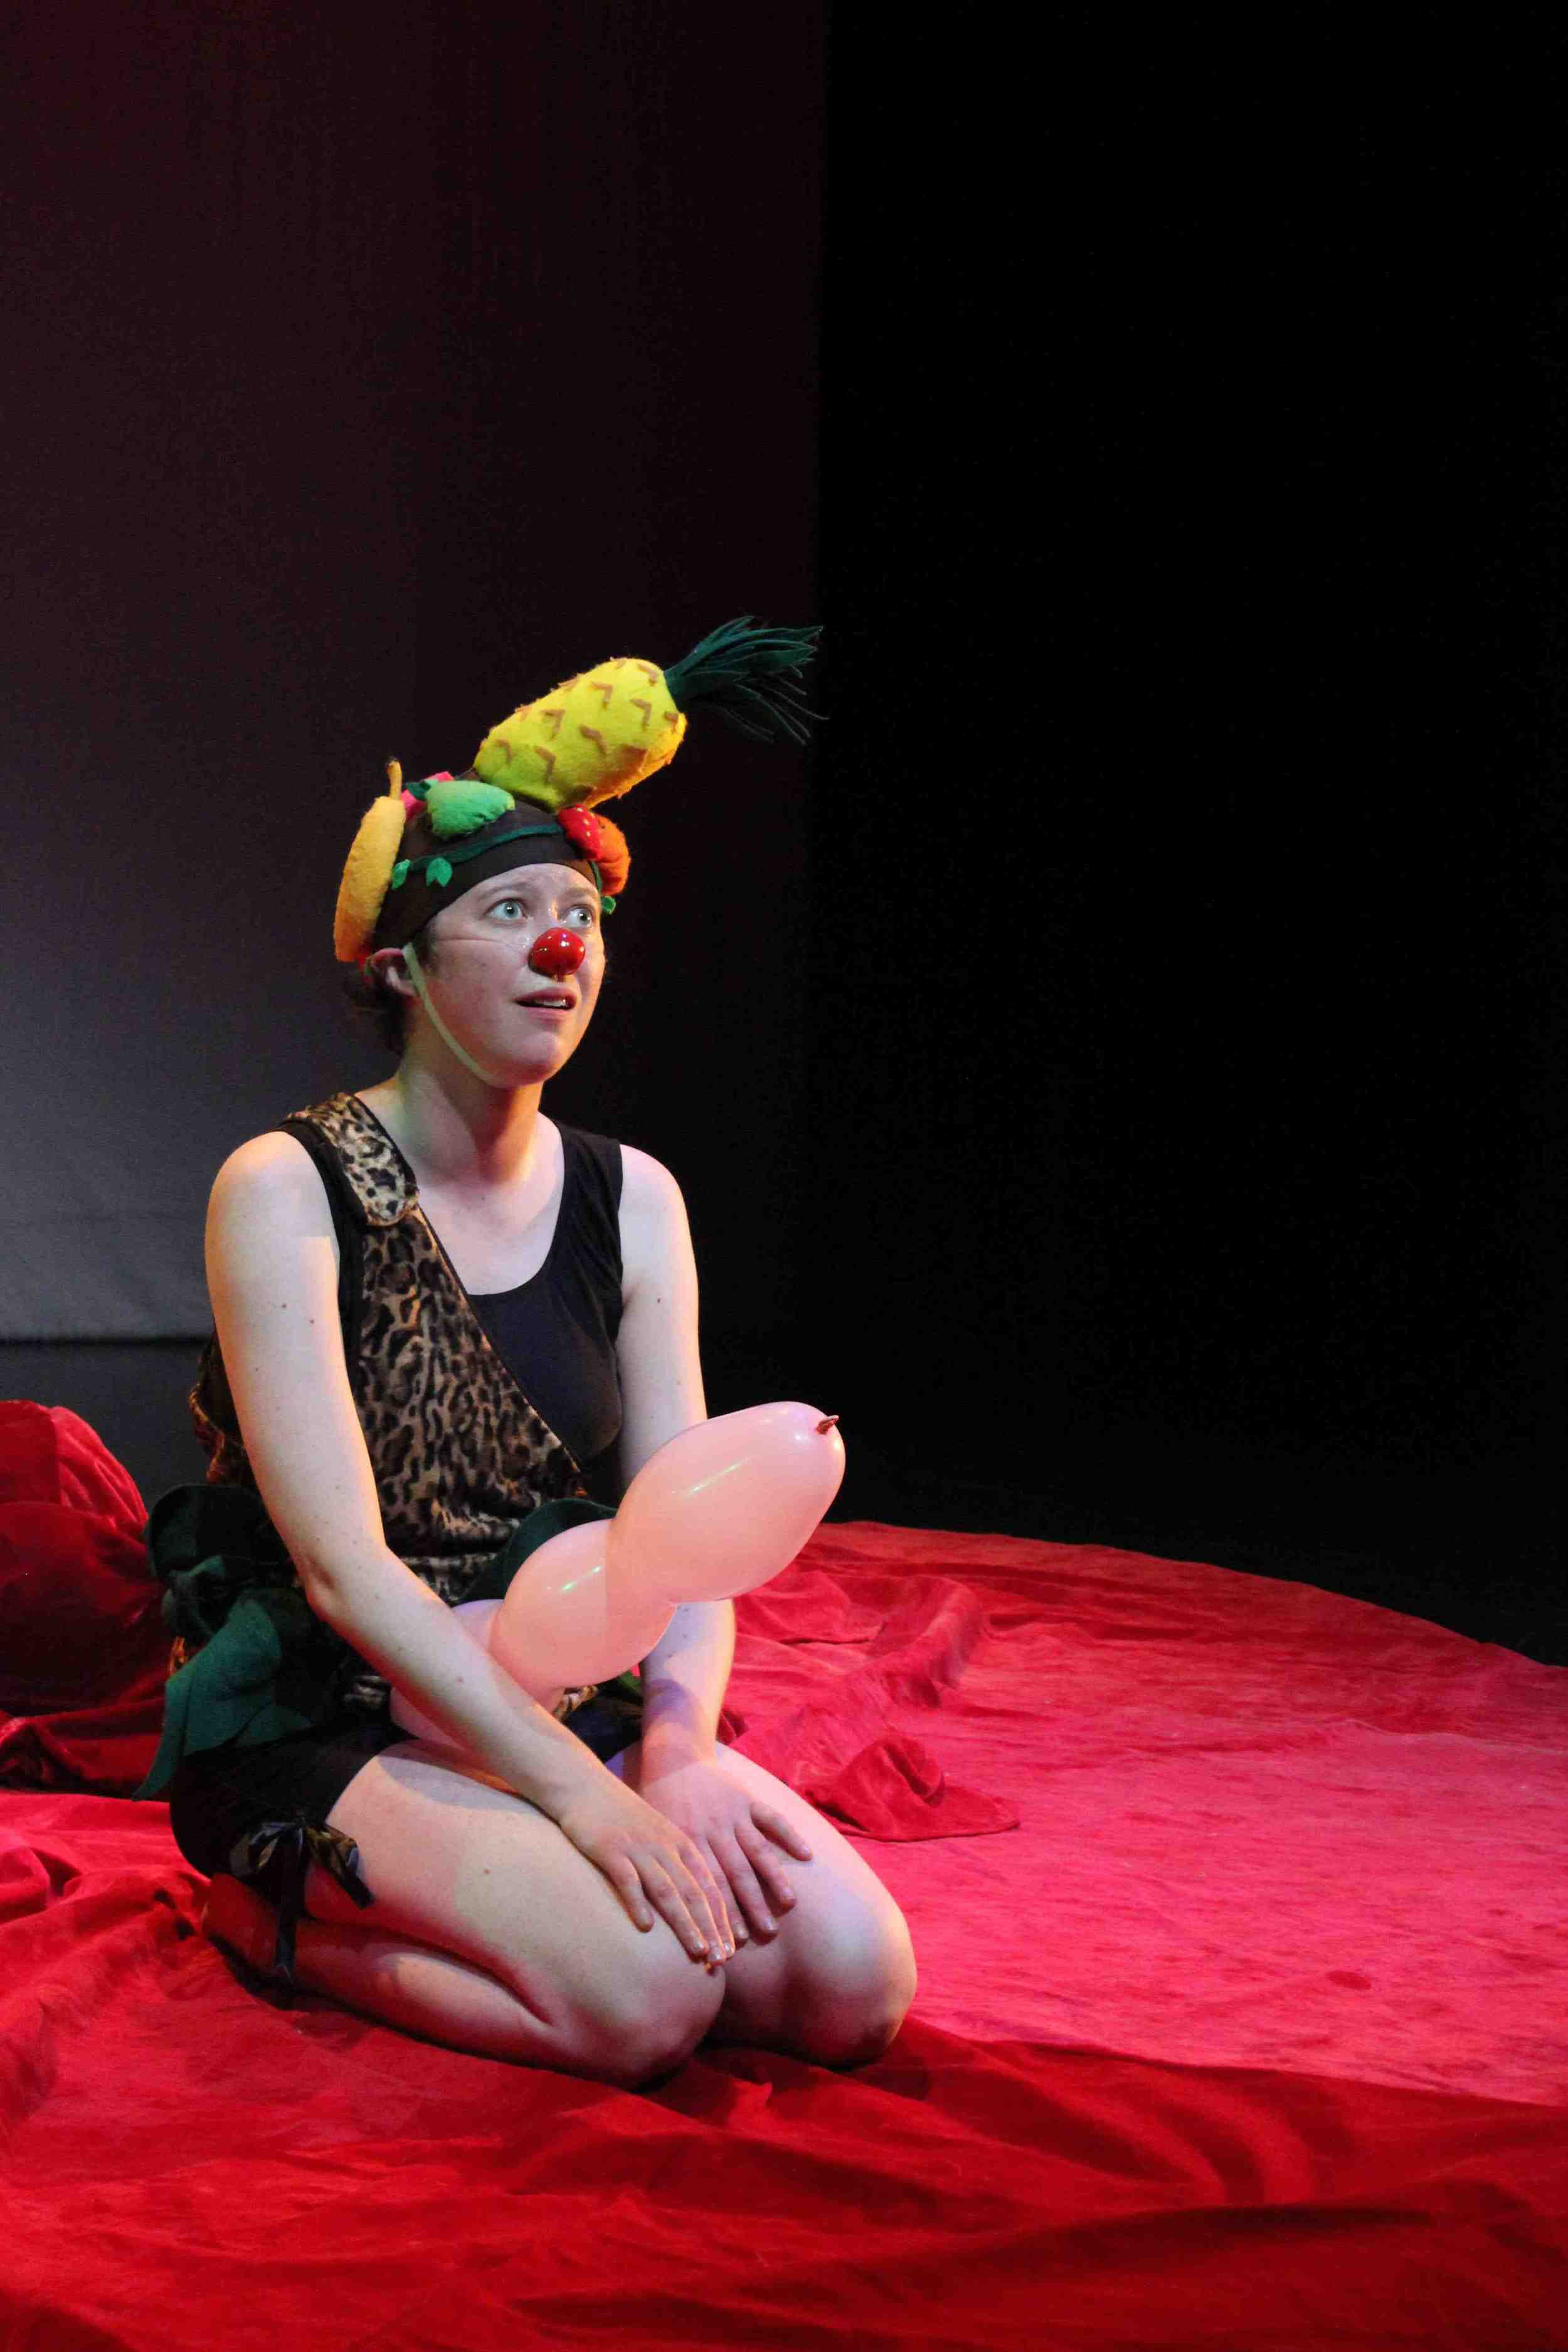 Fruithead, created by Sara Tilley and Mark White, She Said Yes! Theatre Company, 2013. Photo by Kyle Bustin.